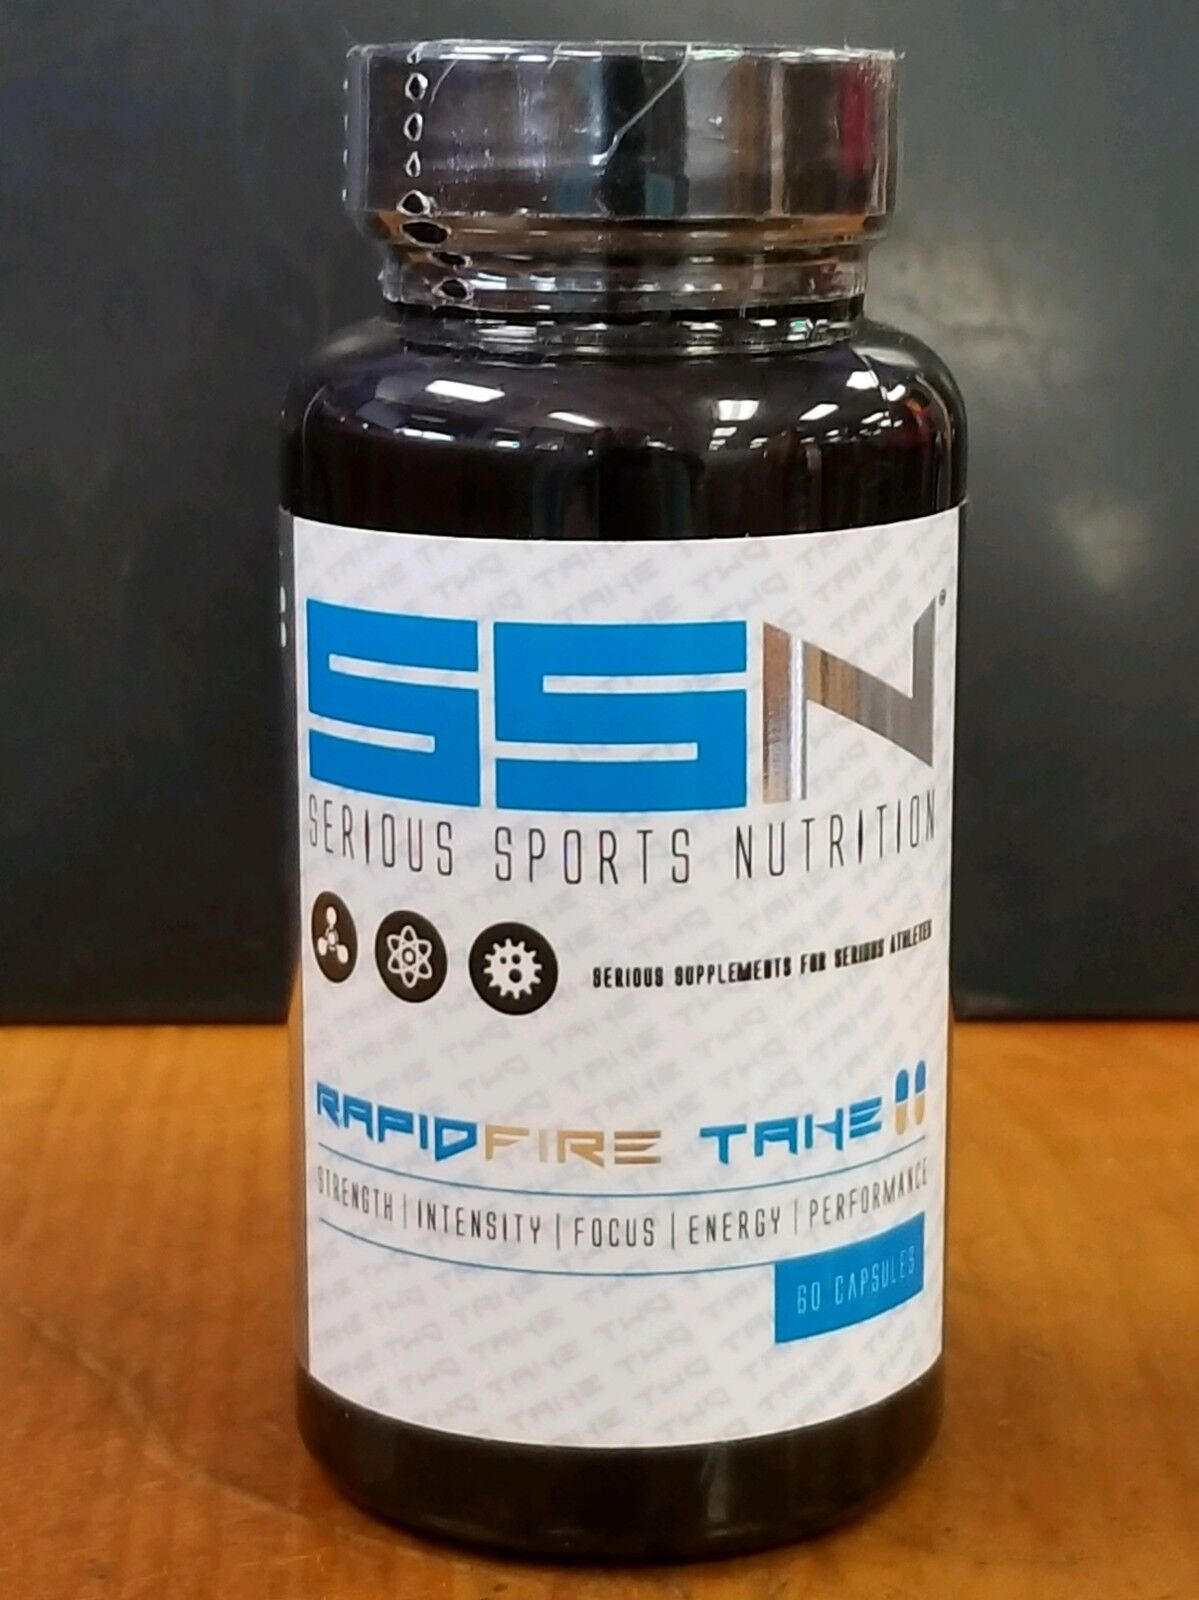 Serious Sports Nutrition SSN Take II - 60 Caps  -ORIGINAL FO